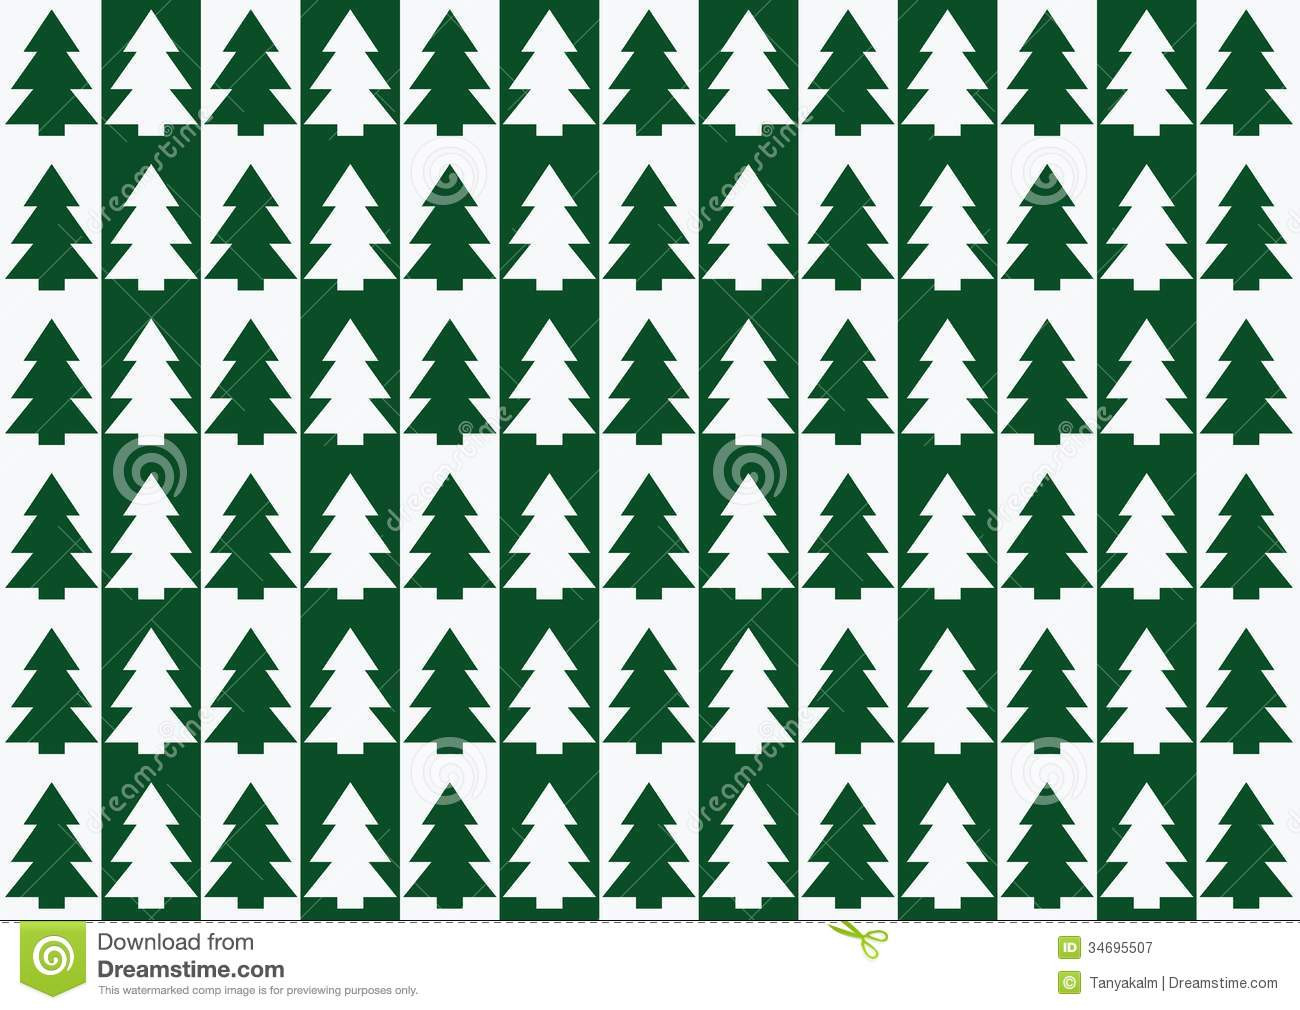 Christmas Tree Pattern Luxury Christmas Tree Pattern Backgrounds – Happy Holidays Of Great 46 Images Christmas Tree Pattern